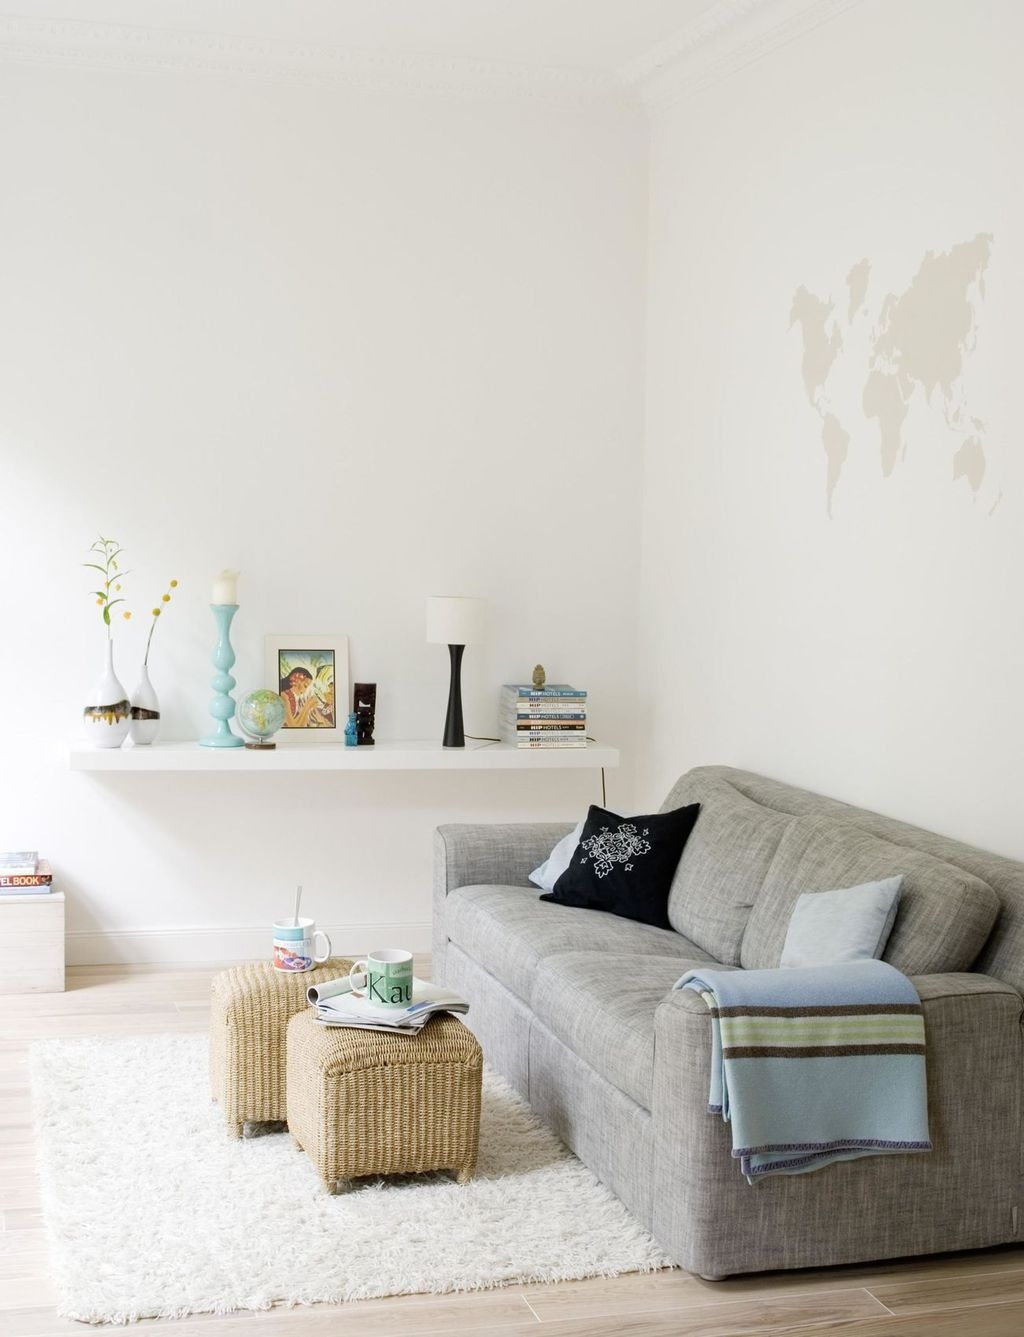 Affordable Arranging Things Ideas In Home For Perfect Order 41